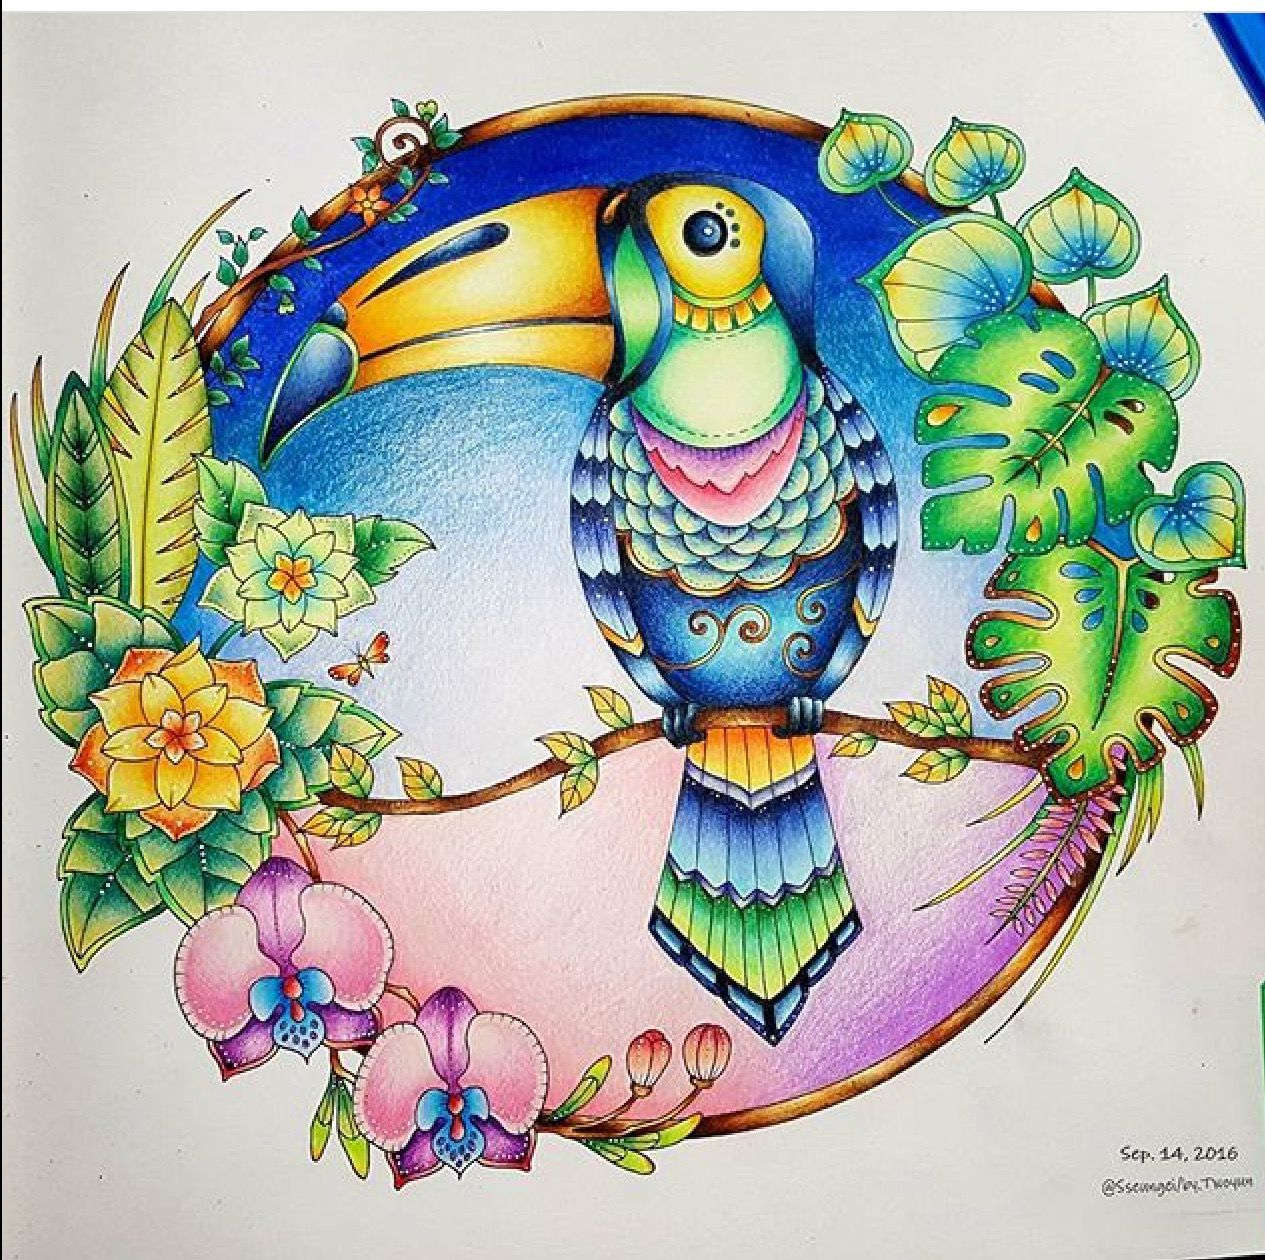 South korea coloring book - Colored Pencil Tutorial Adult Coloring Coloring Books